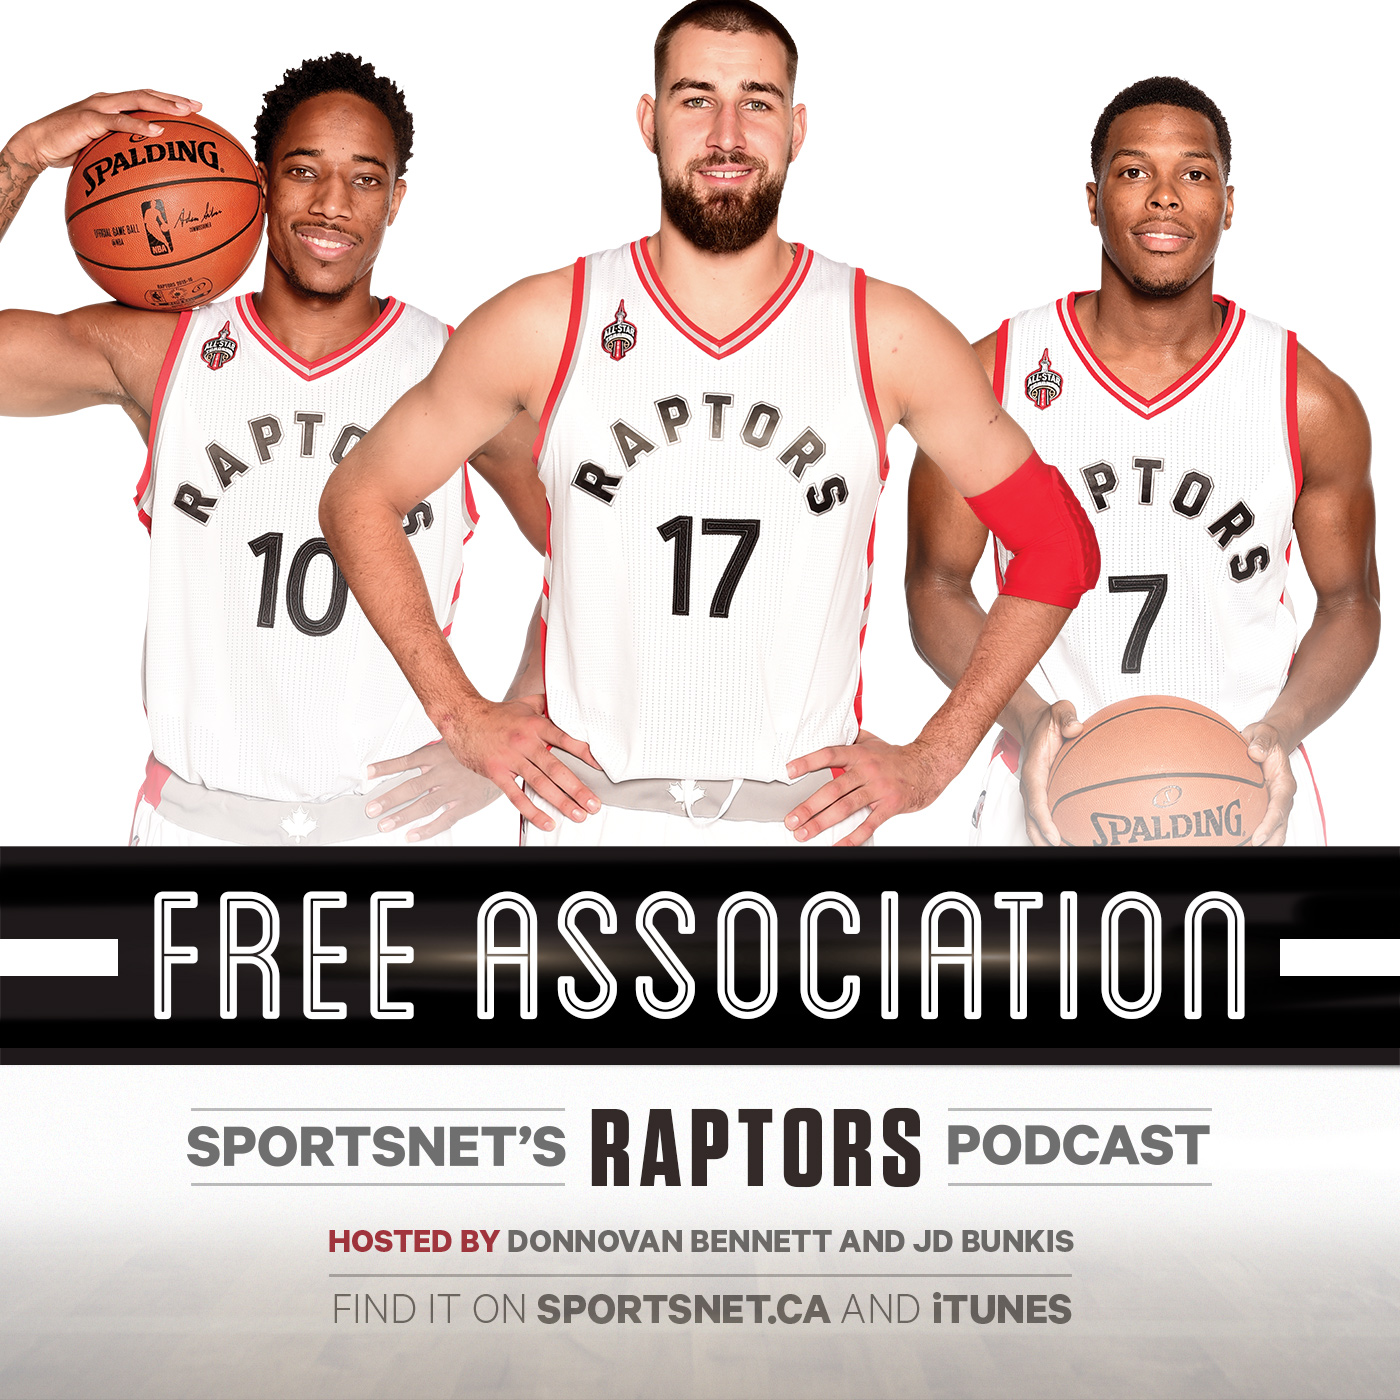 Free Association, Sportsnet's Toronto Raptors podcast